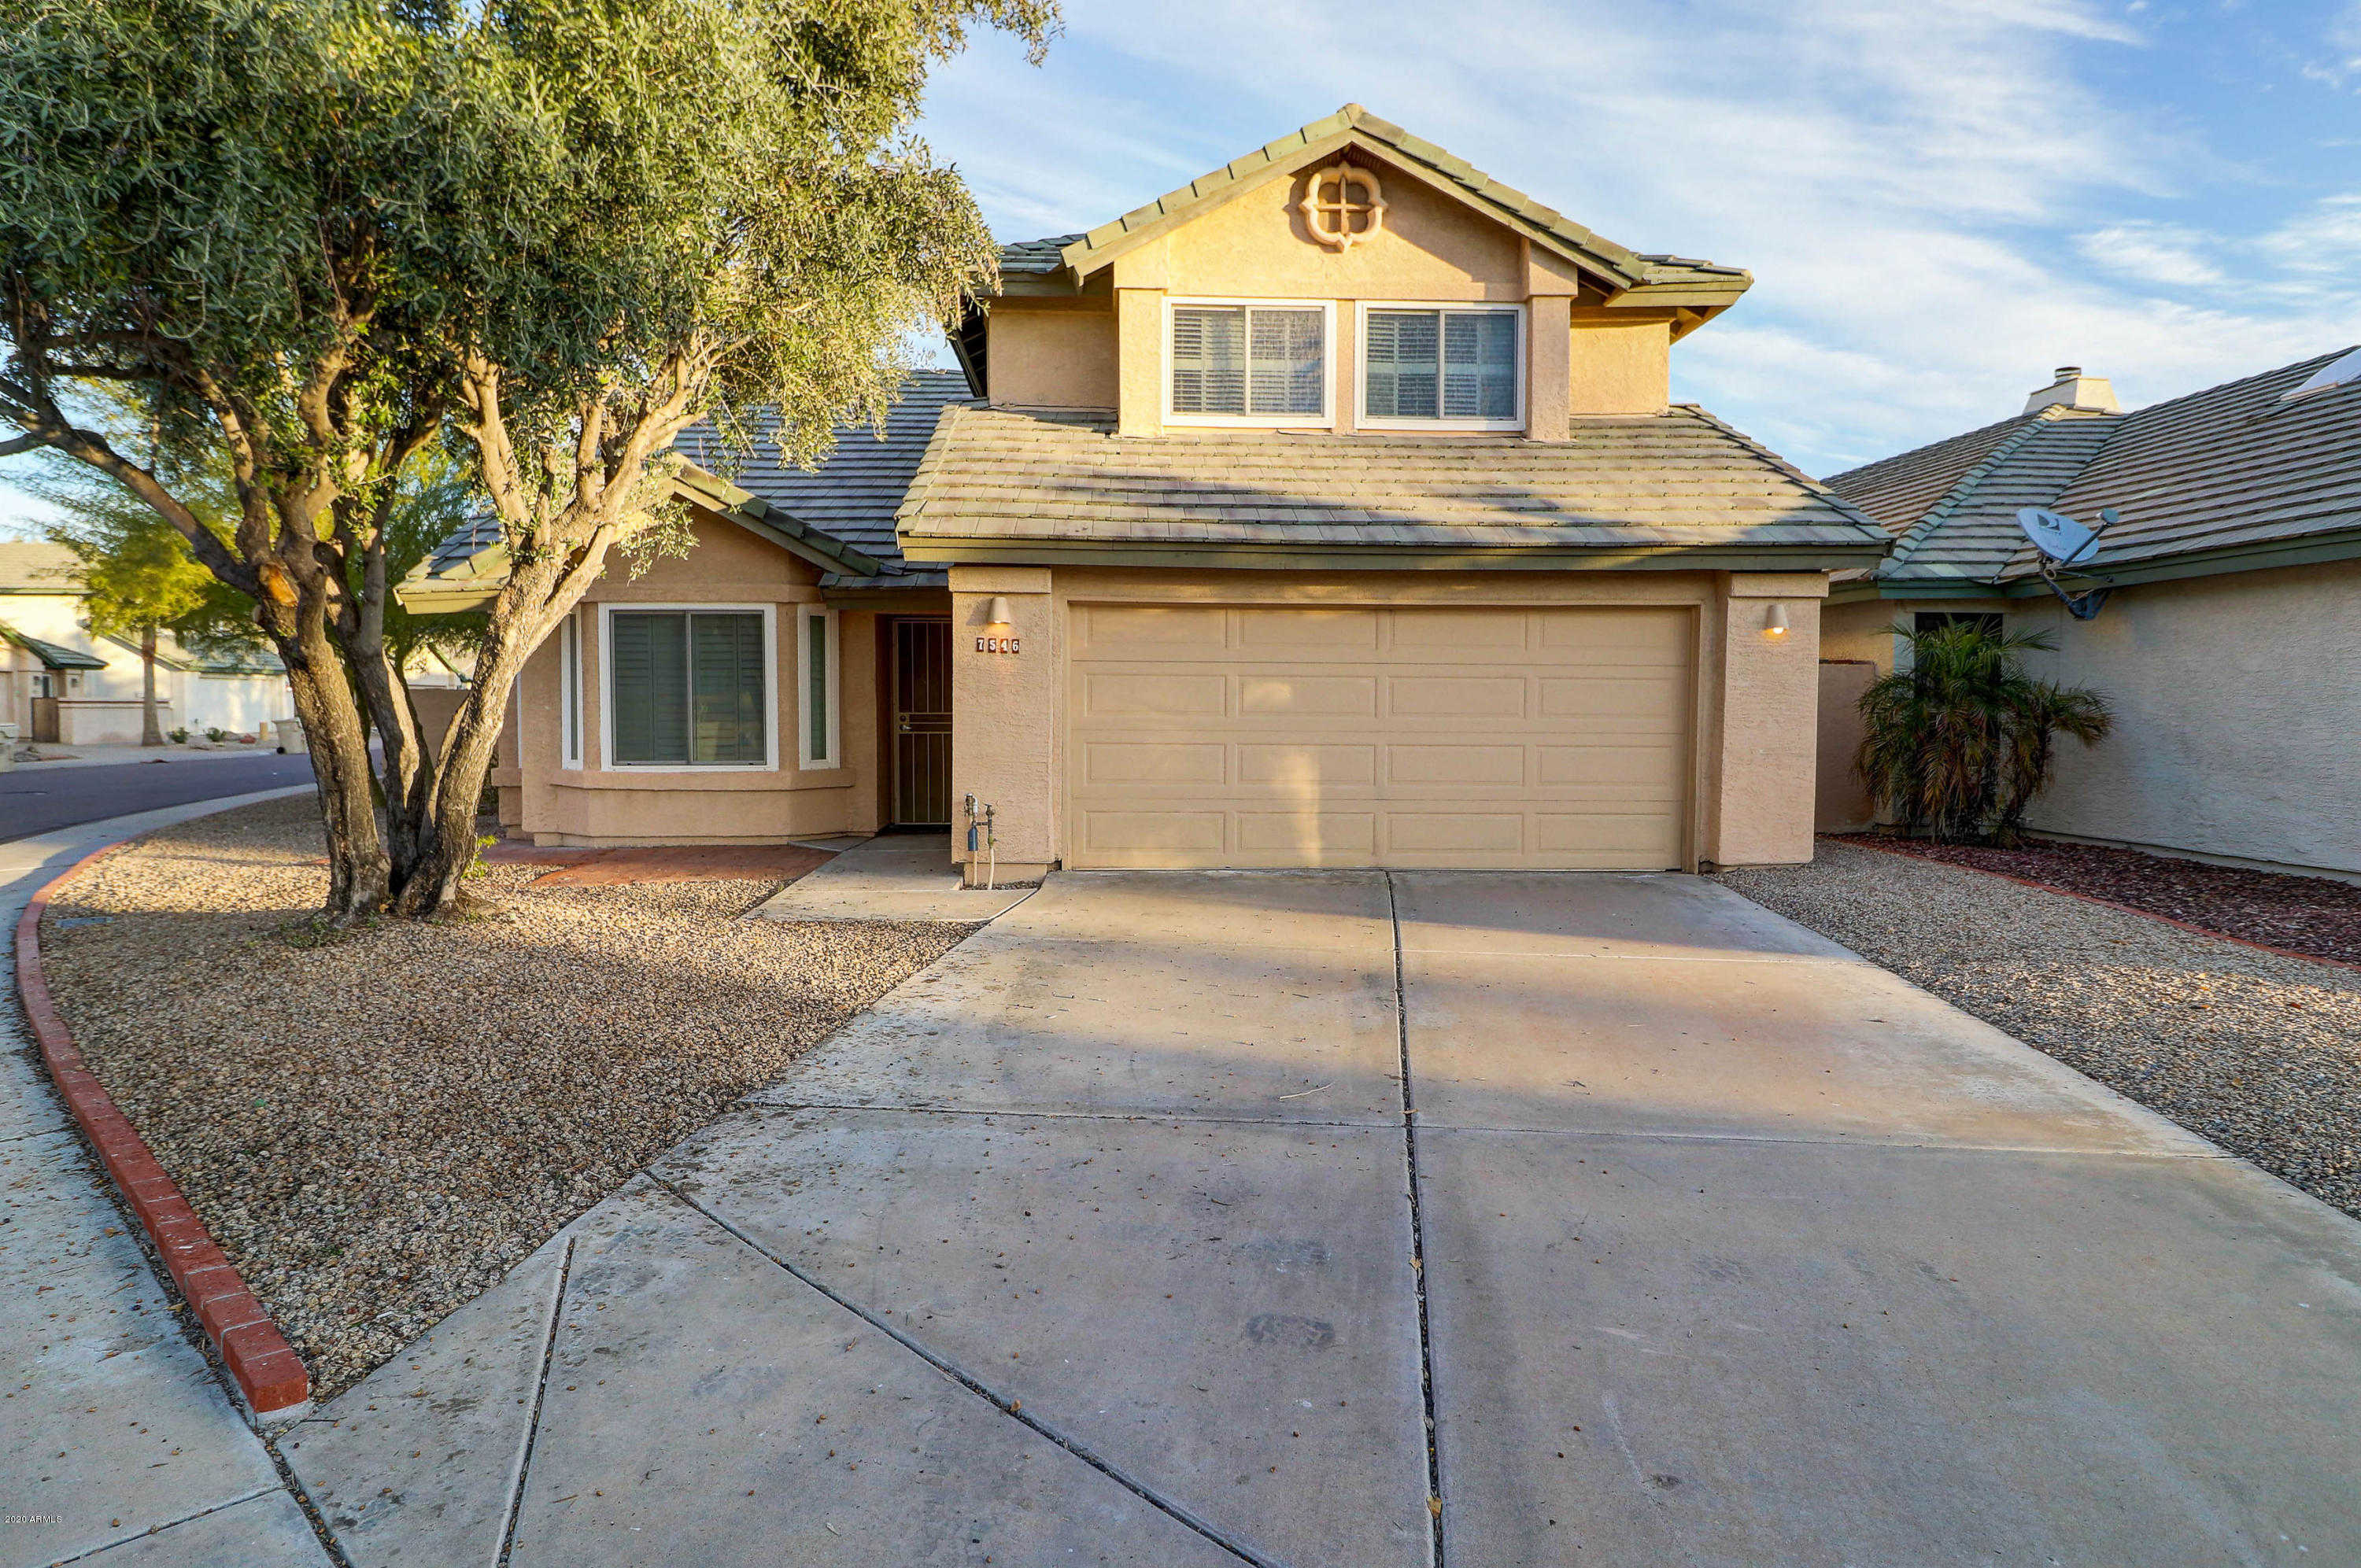 $305,000 - 4Br/3Ba - Home for Sale in Village Greens Lot 1-194 Tr A-e, Glendale